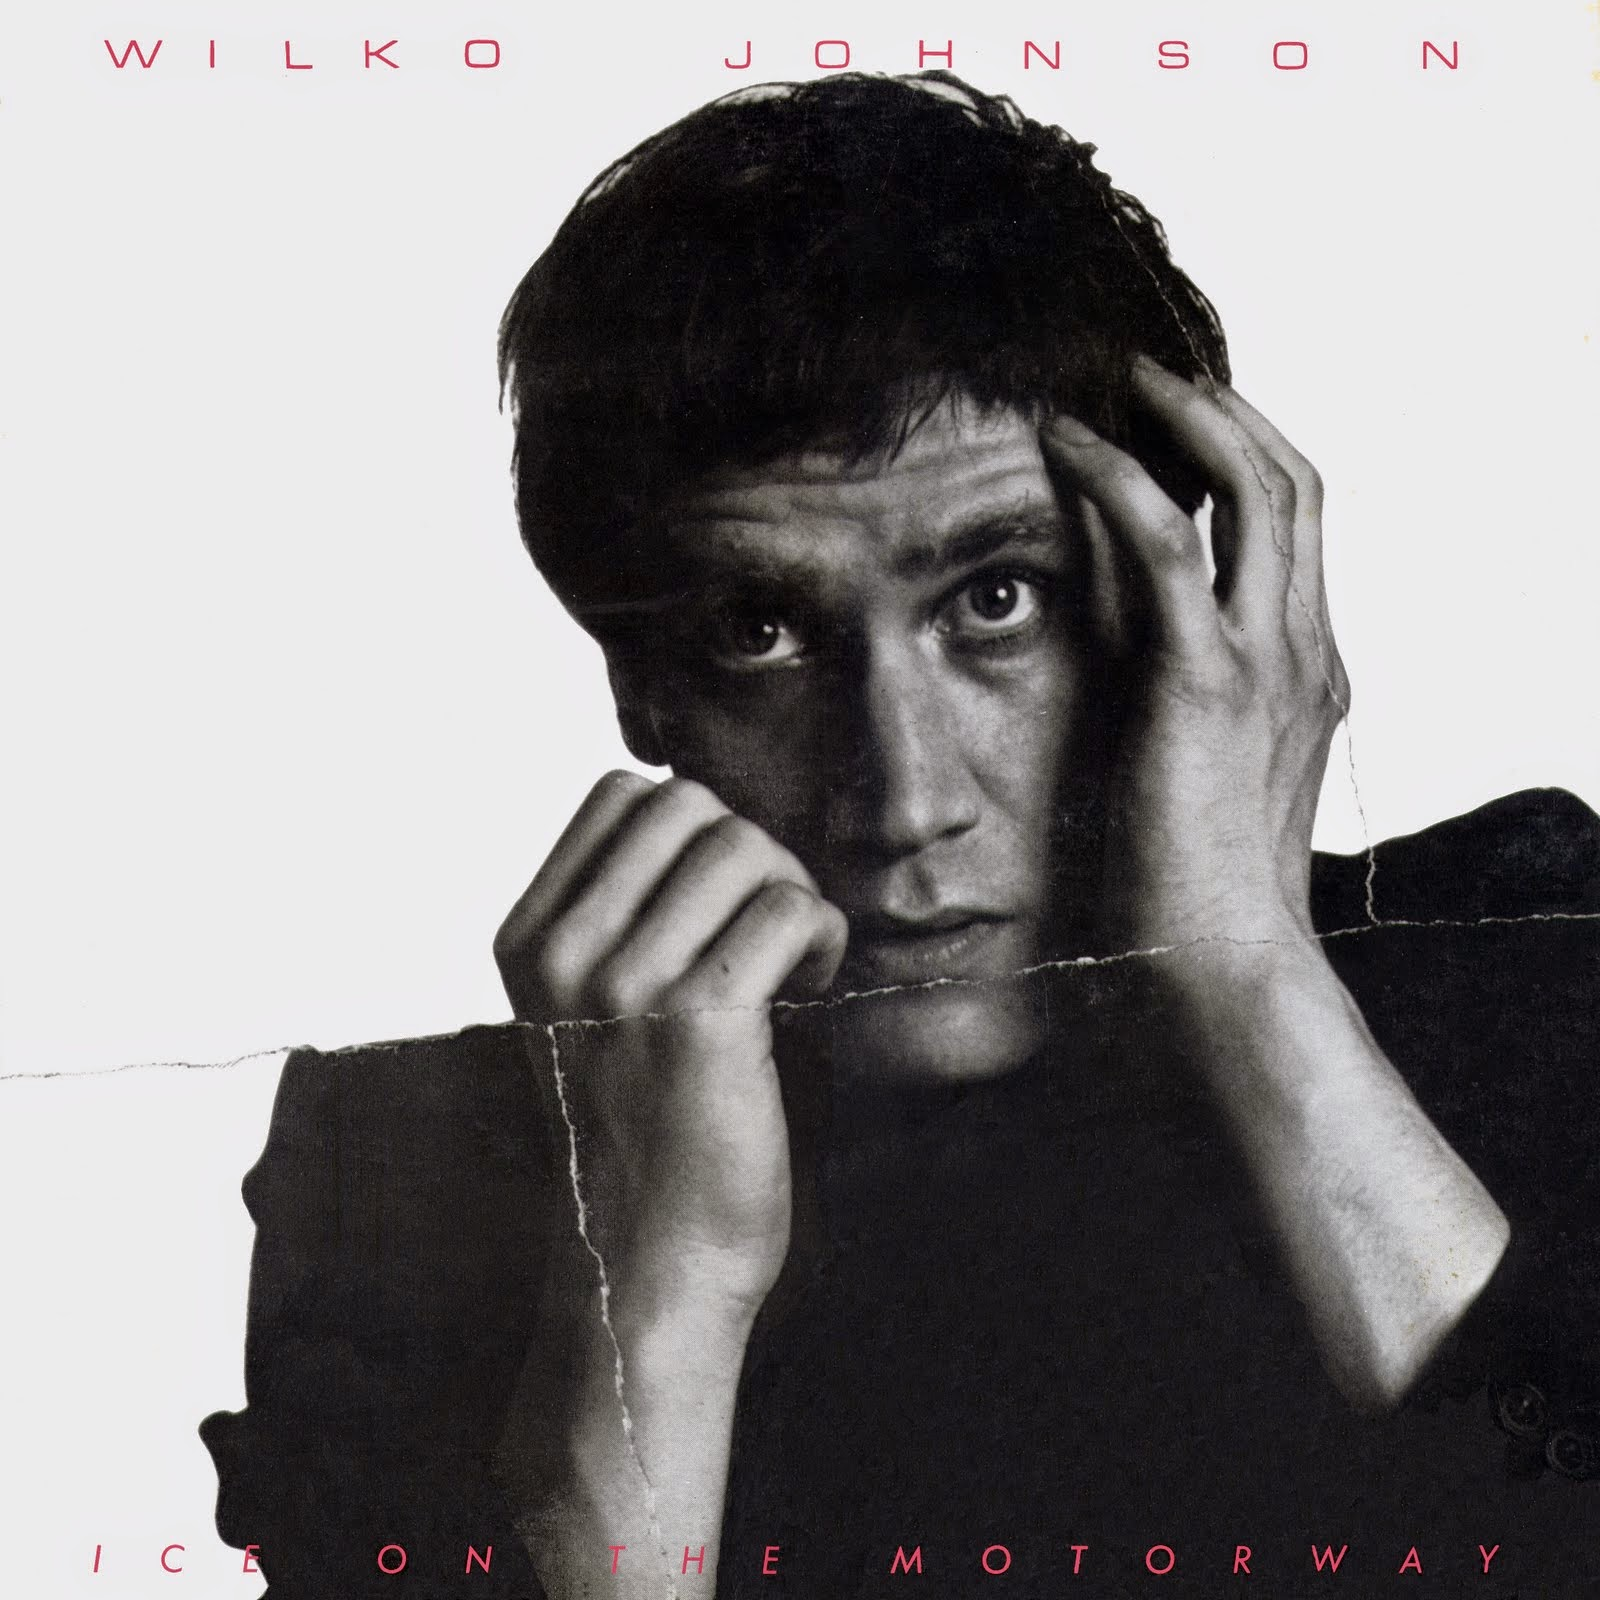 WILKO JOHNSON - Ice on the motorway (1980)